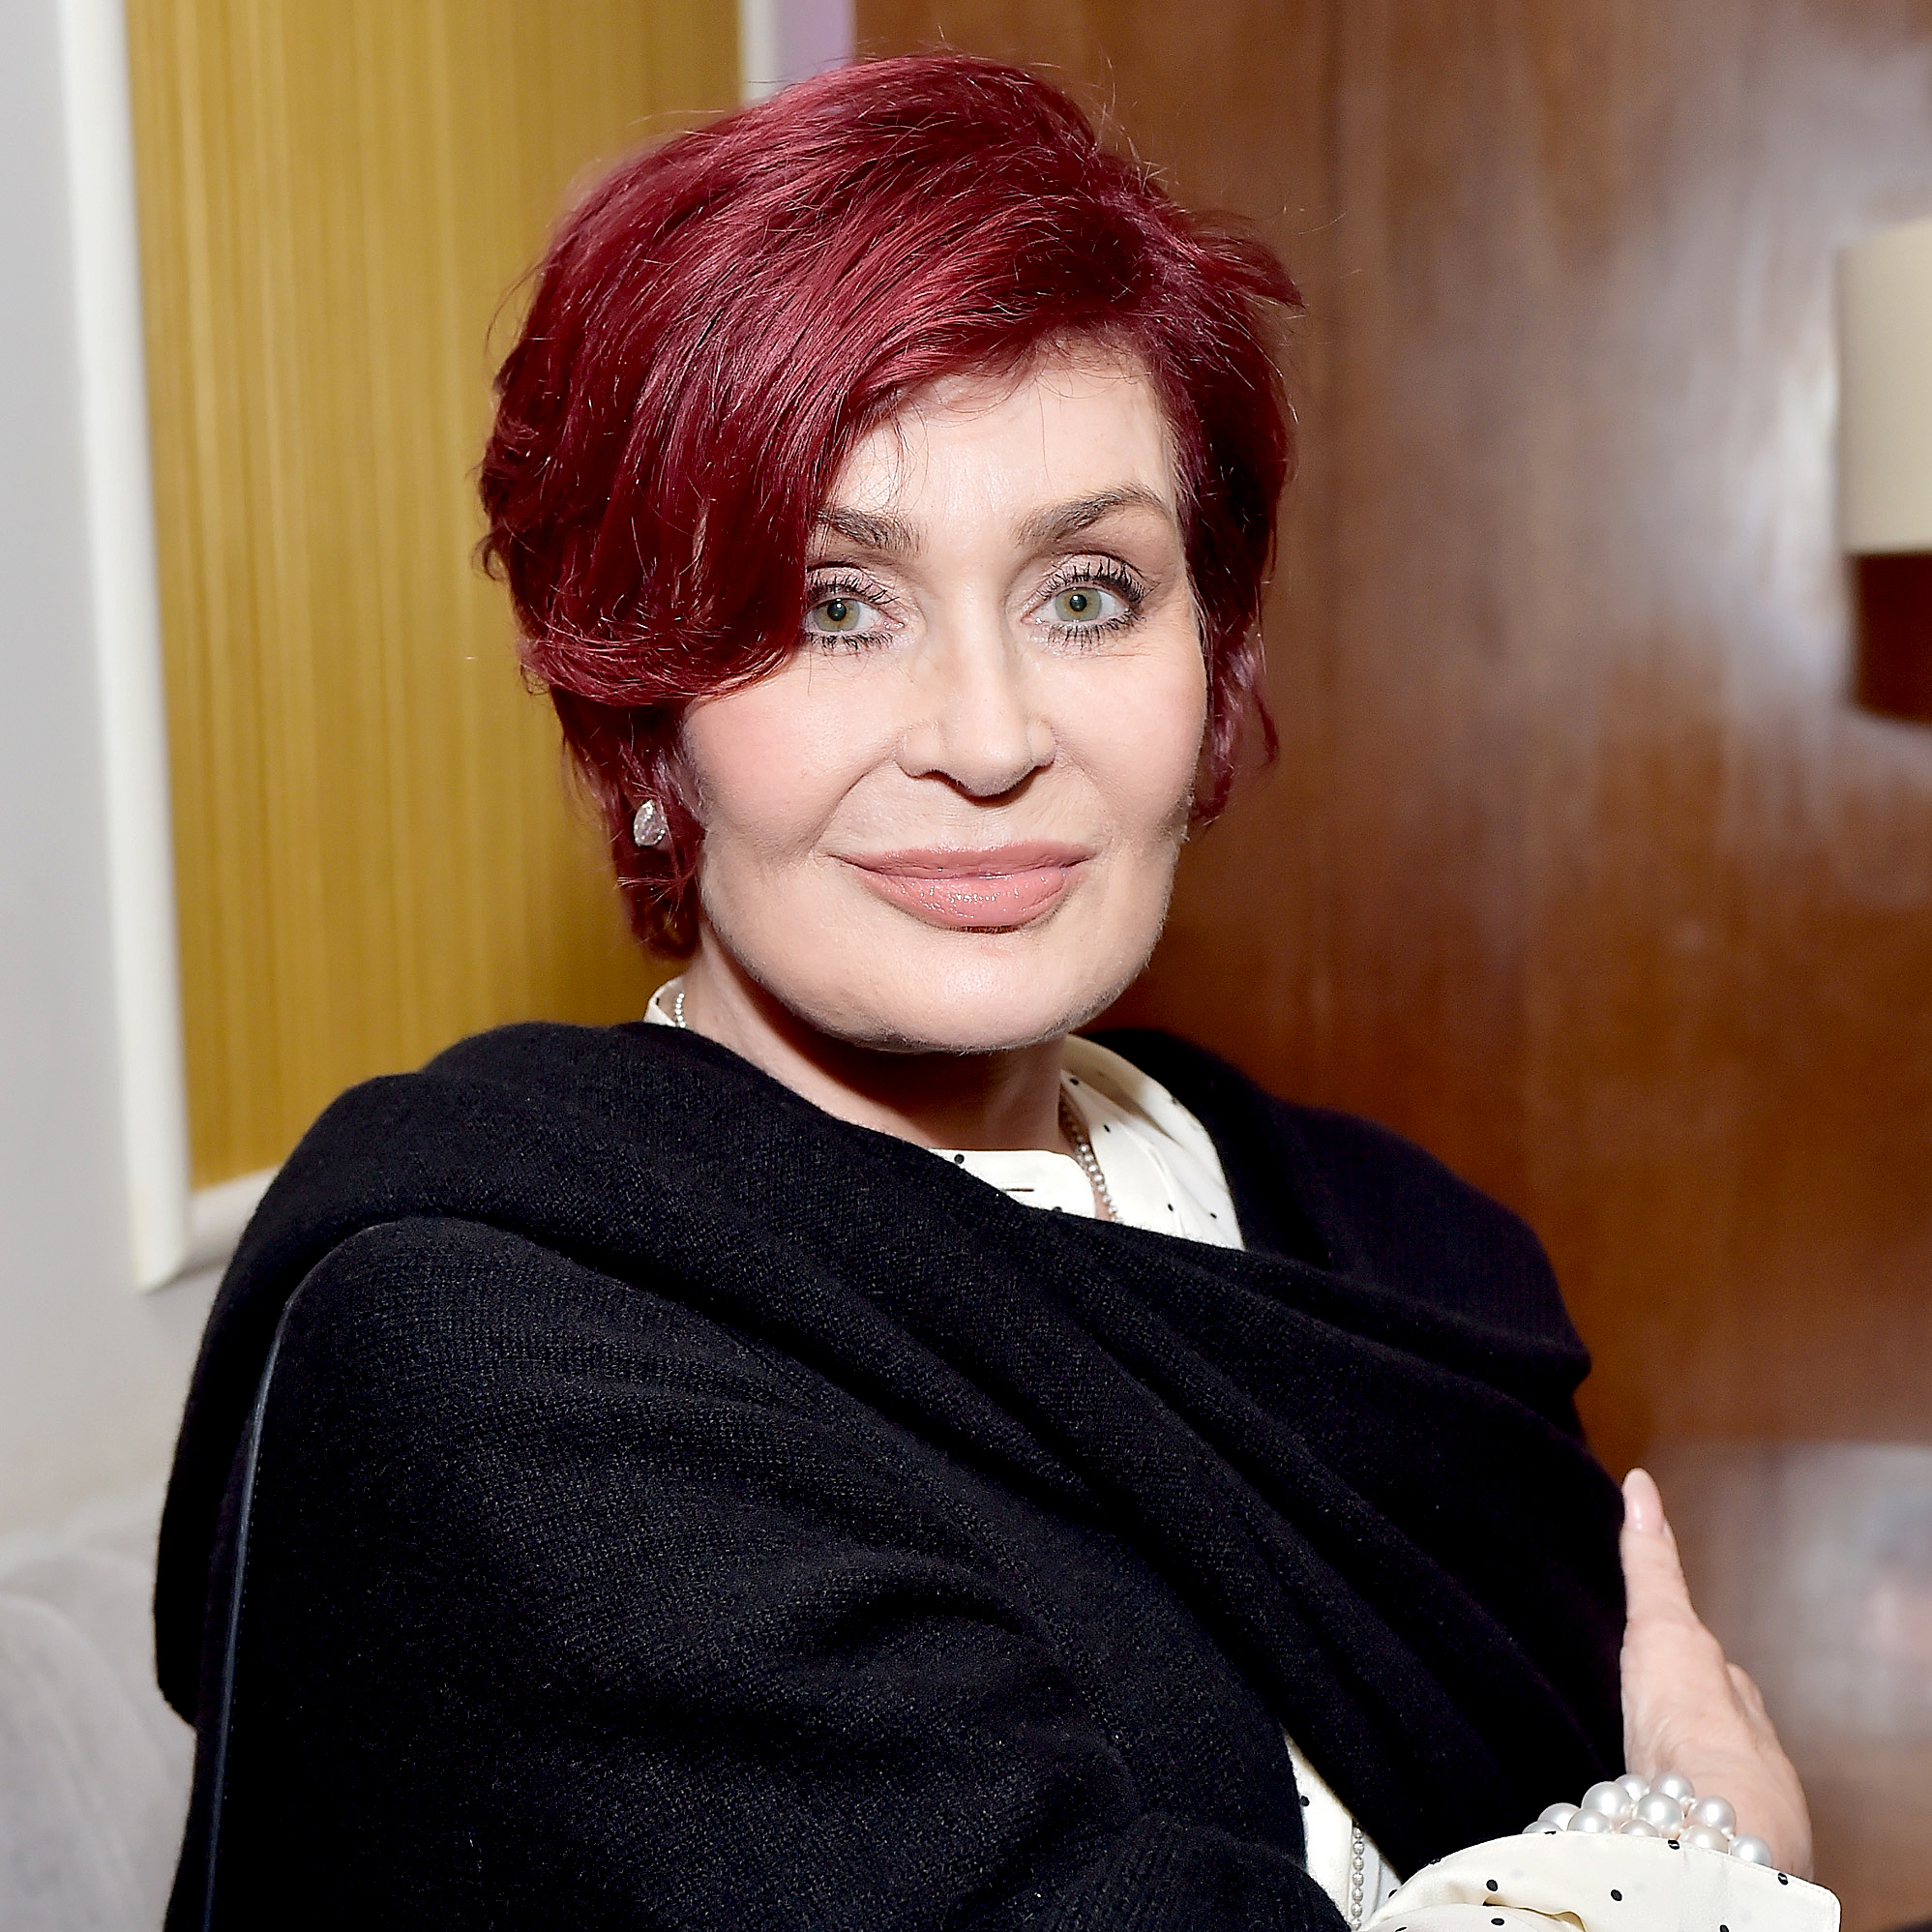 """sharon-osbourne - The reality star suffered abuse at the hands of her now-estranged music mogul father. """"He would whack me and he used to yank my hair,"""" she said on a U.K. talk show in 2007."""